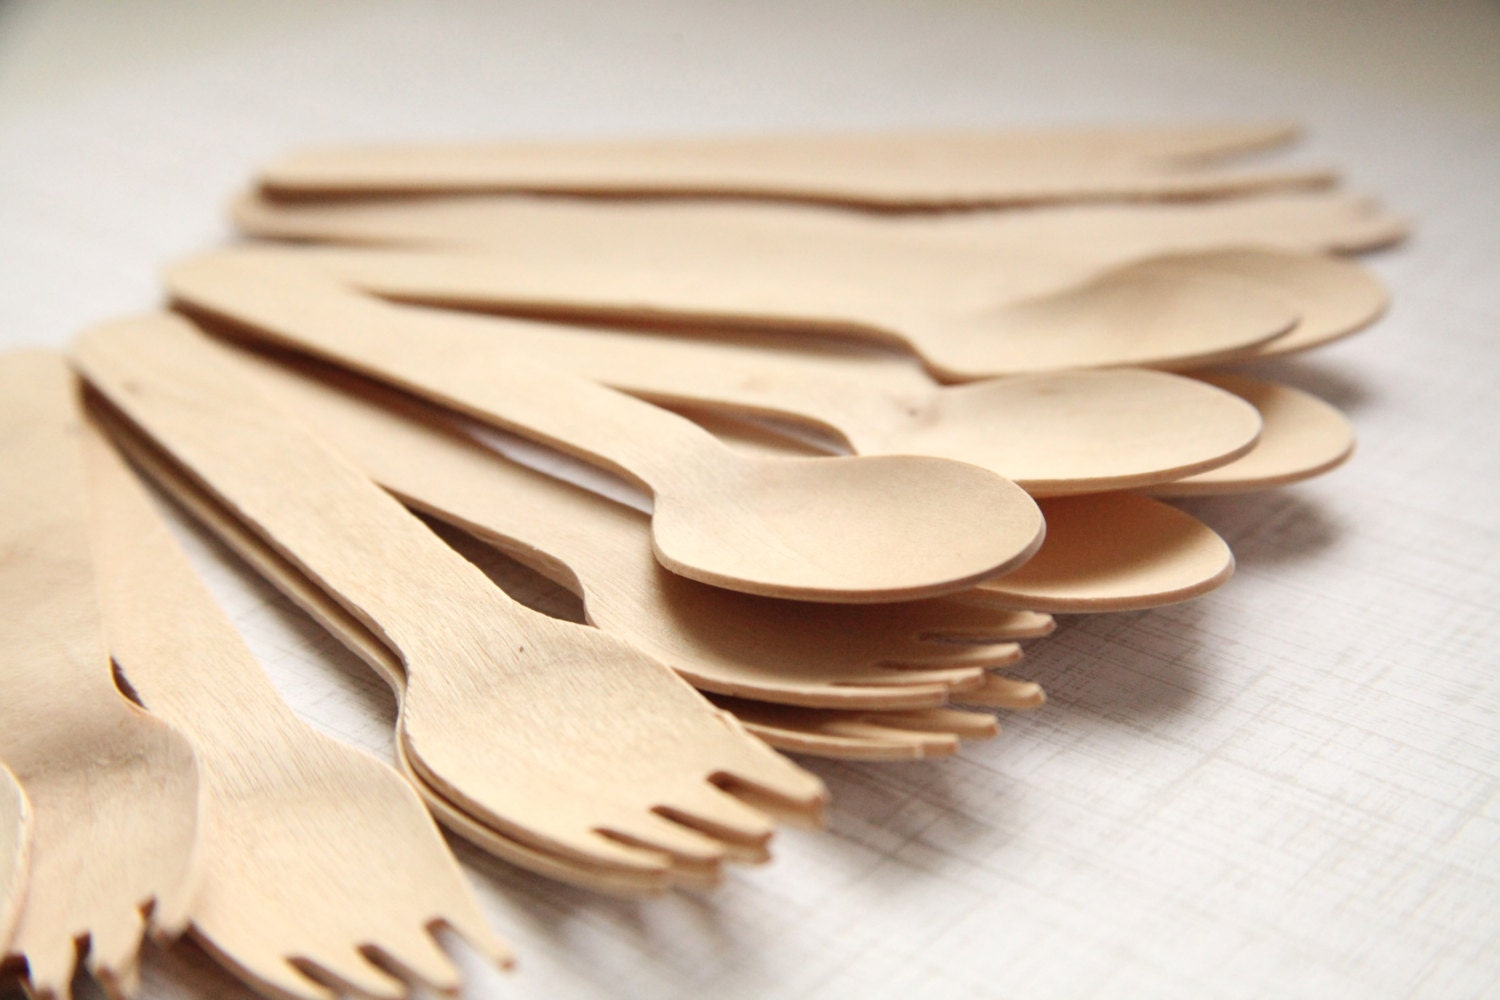 Party Set (75) Eco-Friendly Wooden SPOONS, FORKS, KNIVES  (25 each) - Disposable - Handmade Wedding // Birthday // Holiday // Craft Party